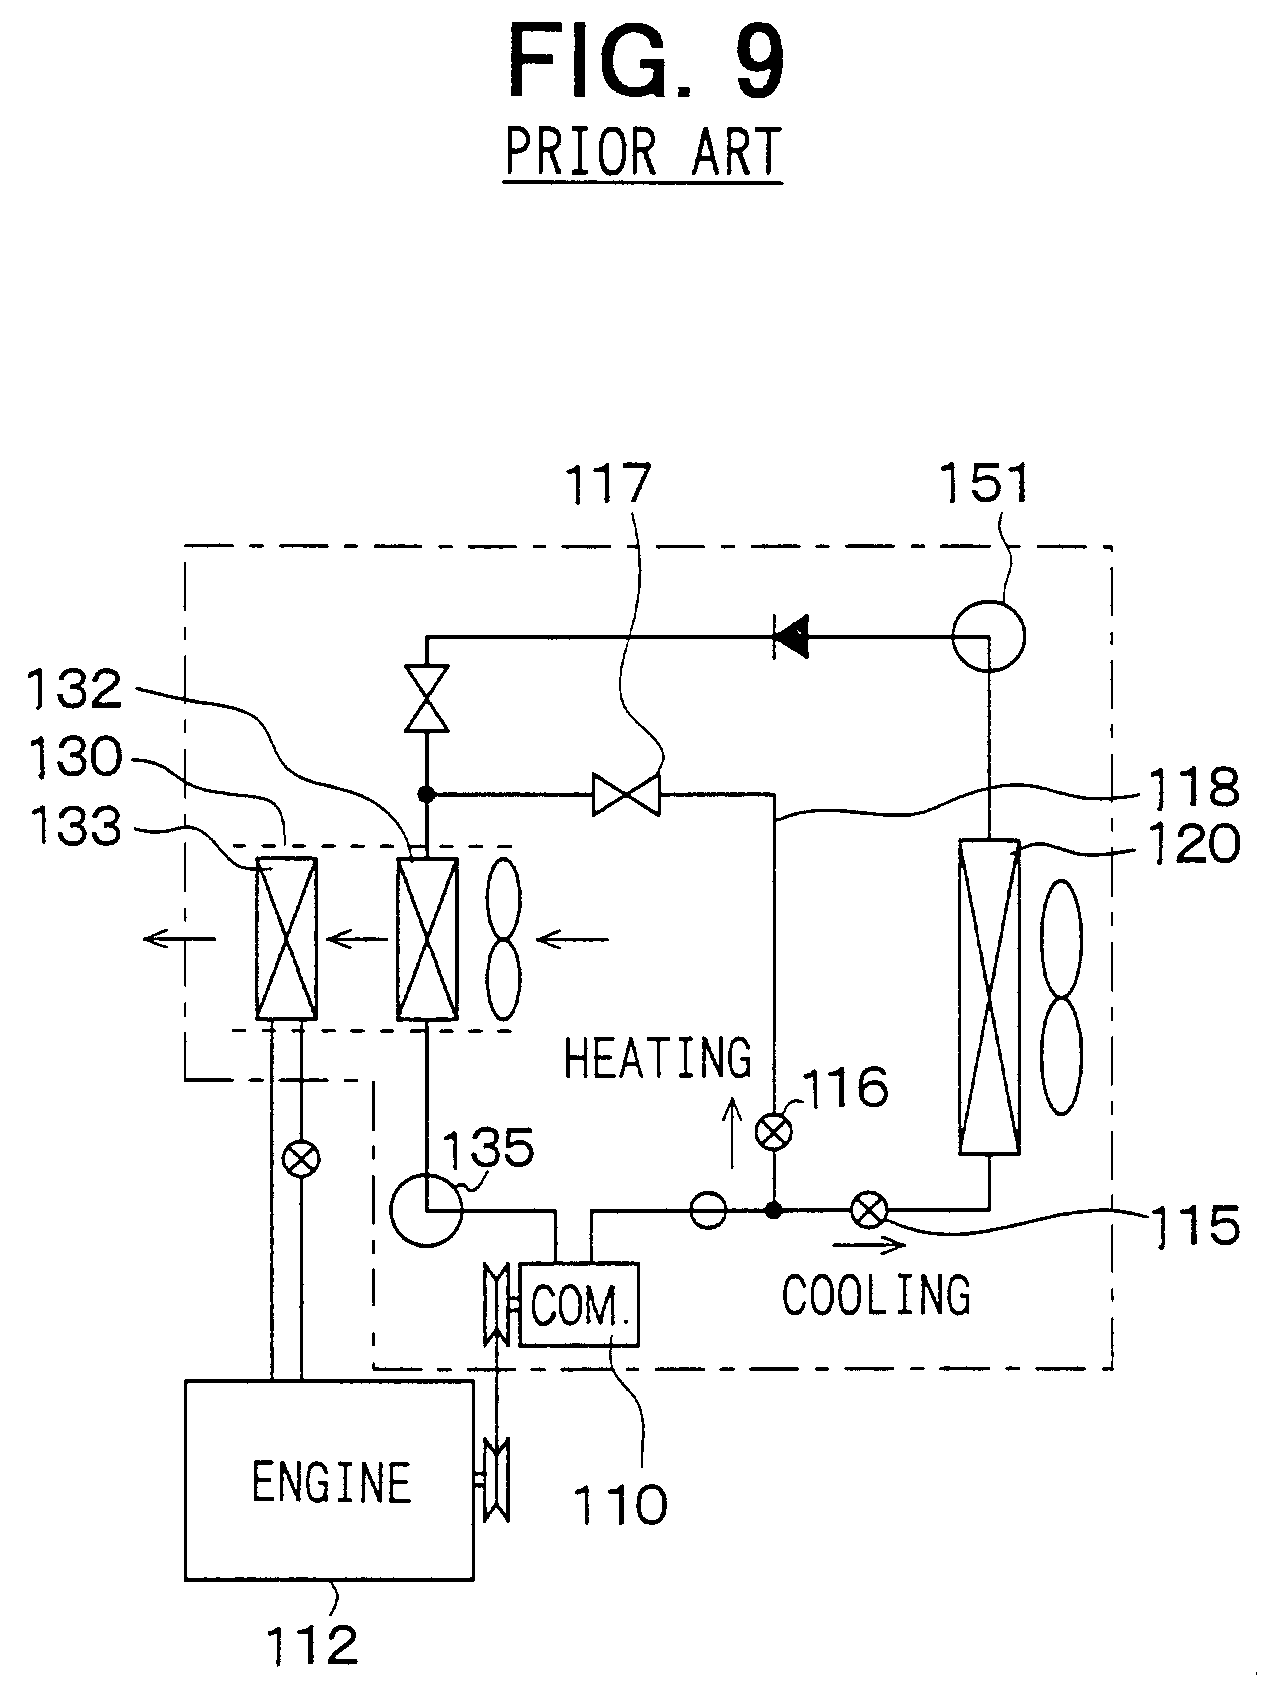 Hot Gas Bypass Piping Pictures To Pin